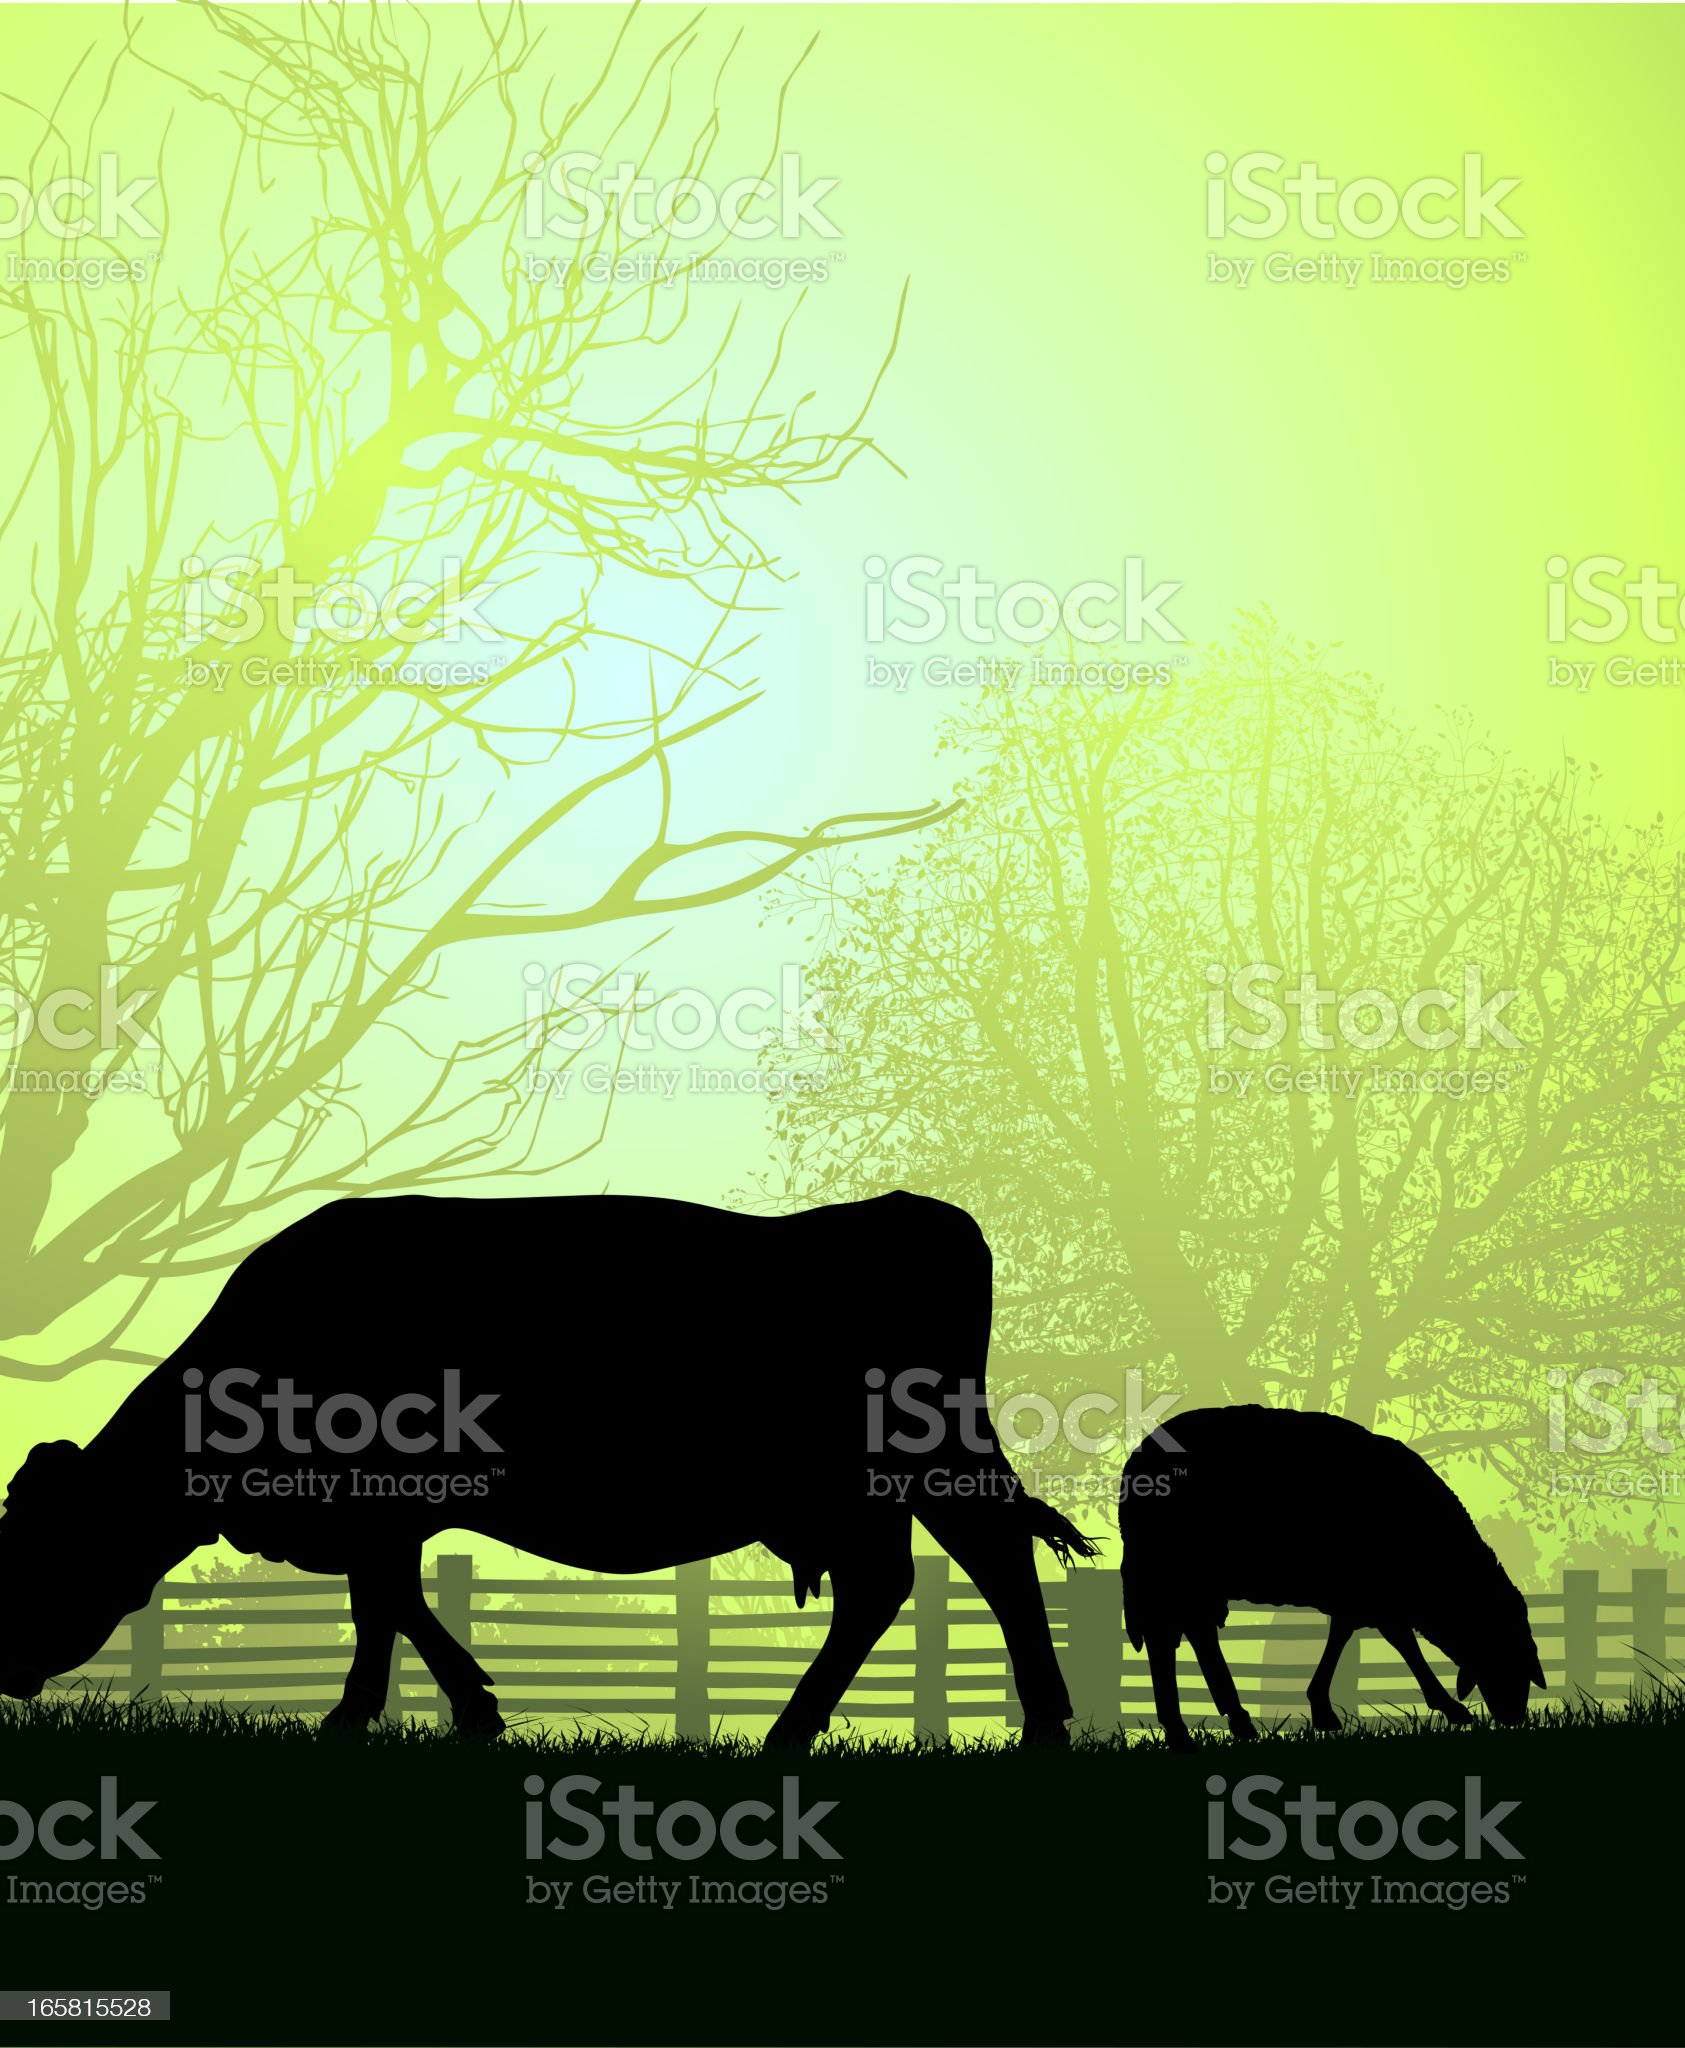 Cow and sheep silhouetted in field against misty sun light  royalty-free stock vector art